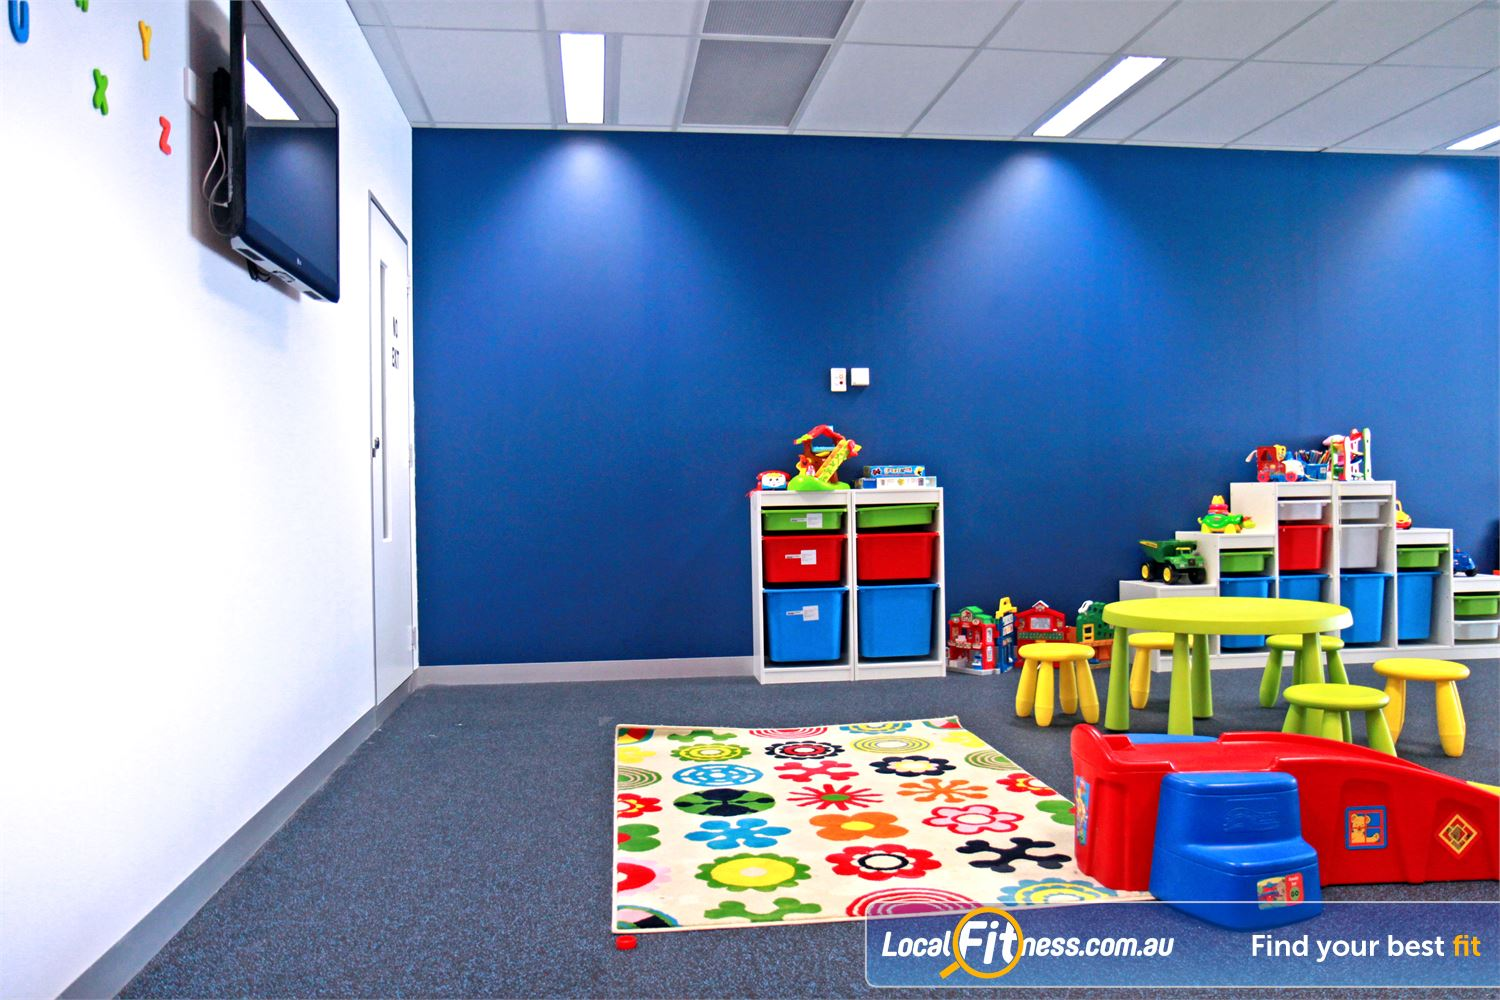 Goodlife Health Clubs Cross Roads Westbourne Park Goodlife Cross Roads provides on-site child minding services.